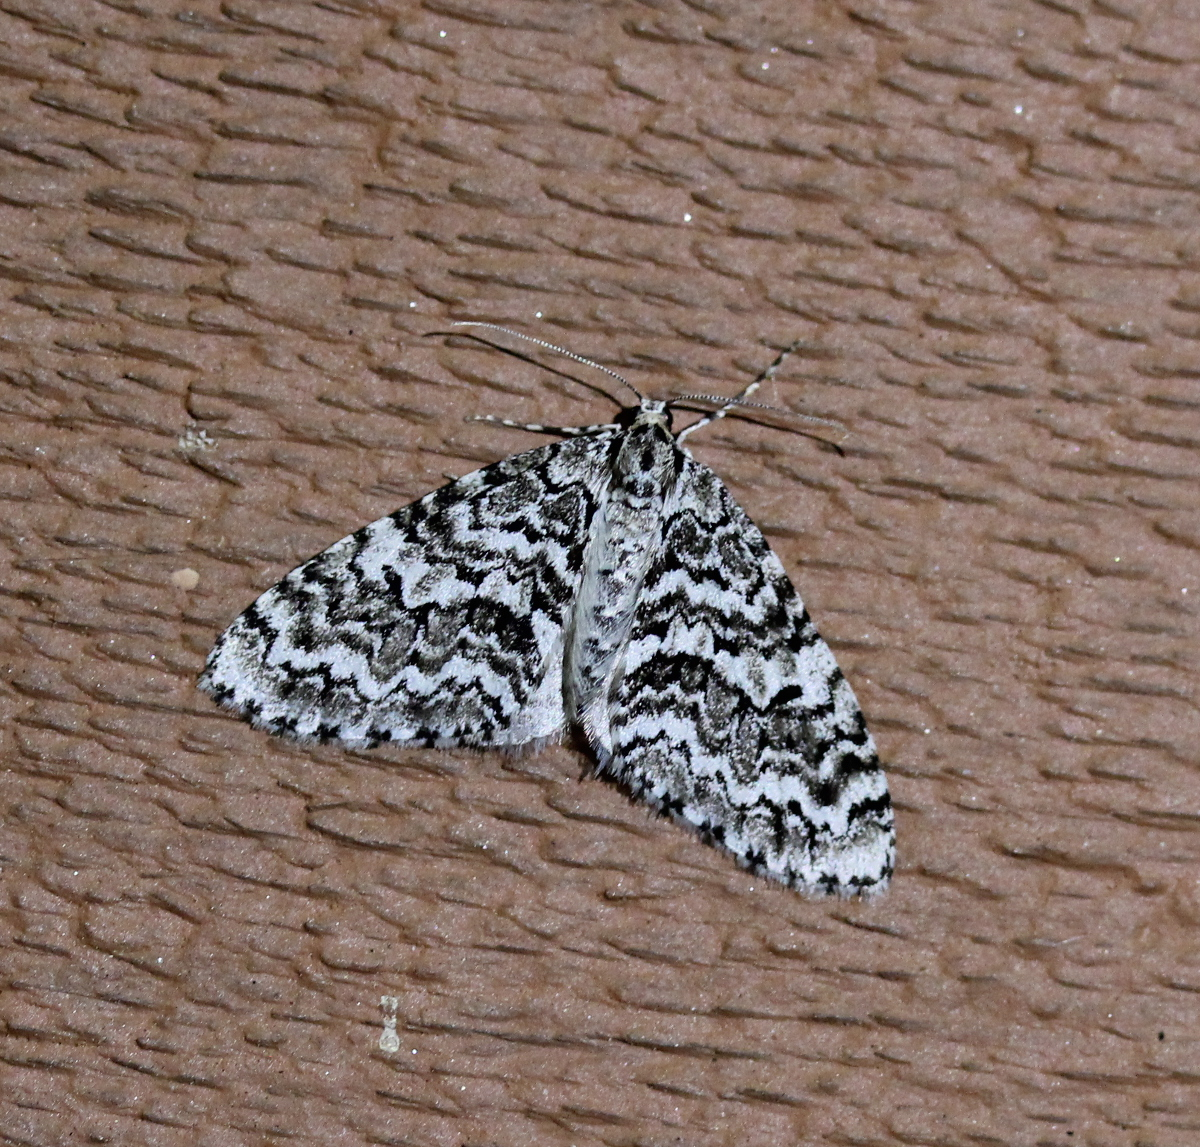 mottled black/white moth on painted siding